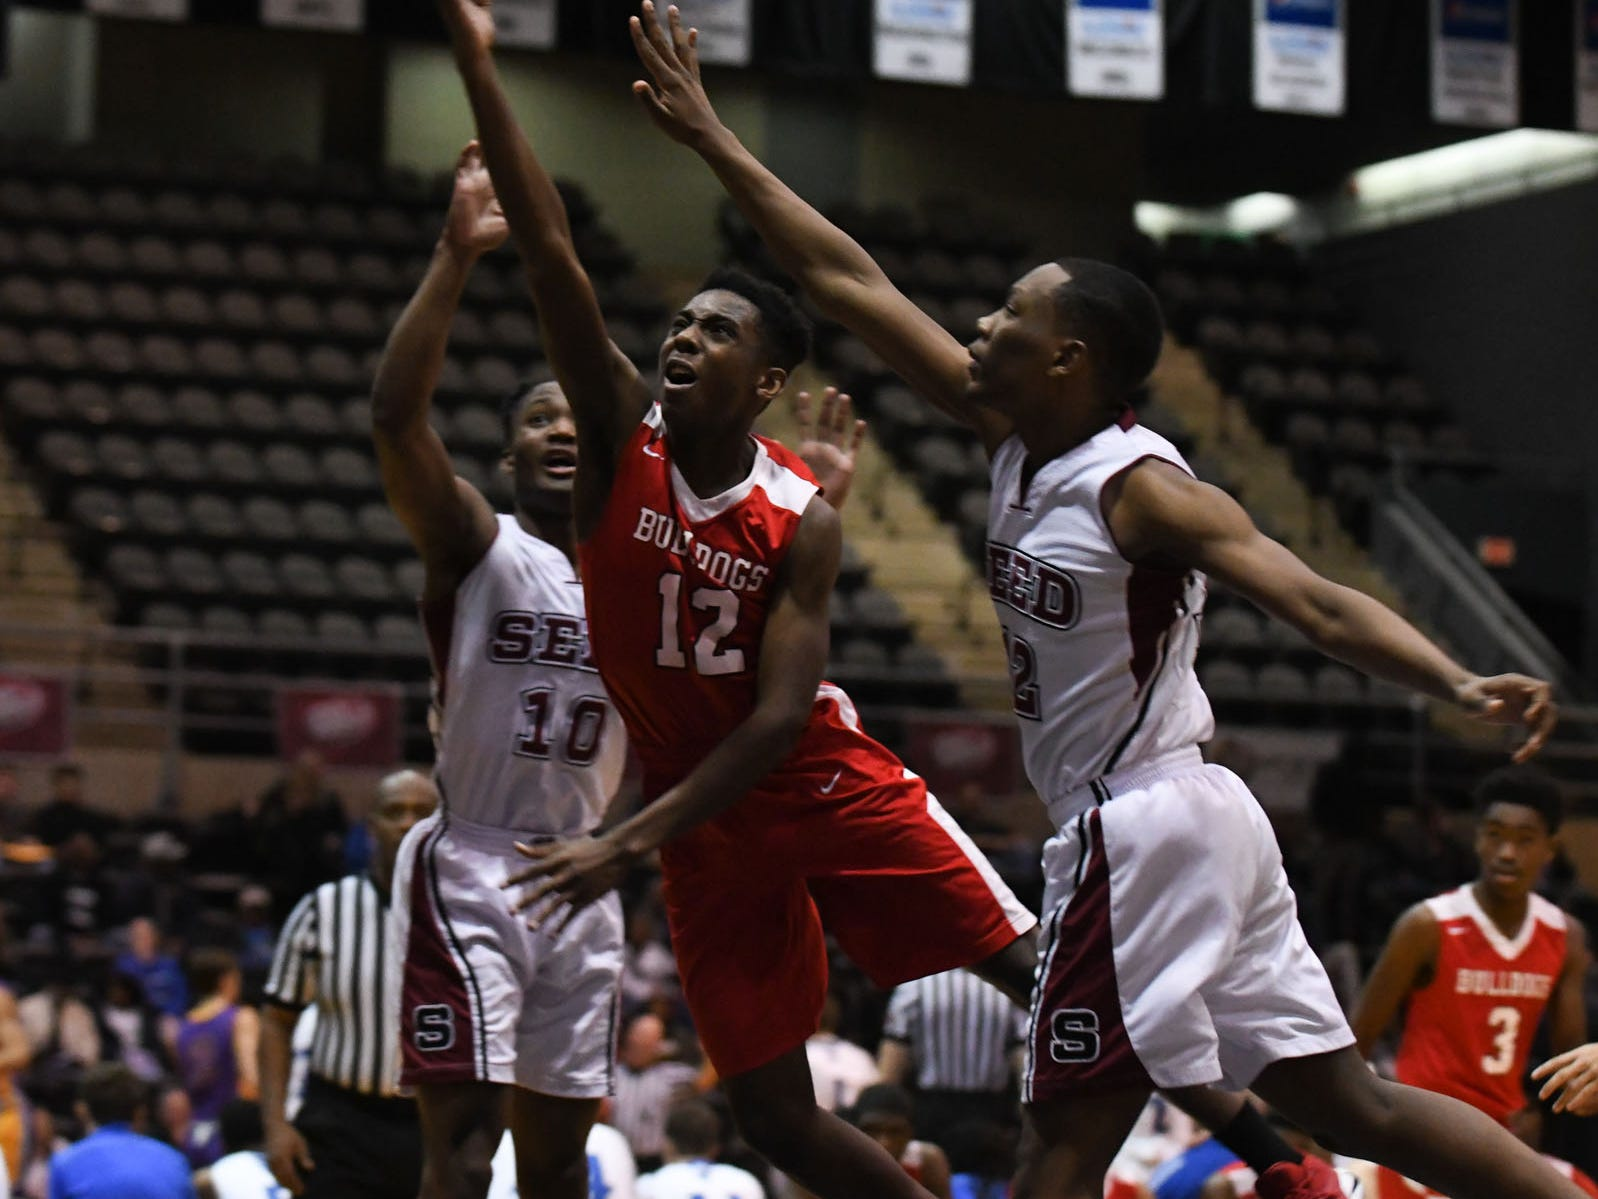 Laurel 's Deshawn Matthews with the layup against the Seed School on Wednesday, Dec. 26, 2018 during the Governors Challenge in Salisbury, Md.